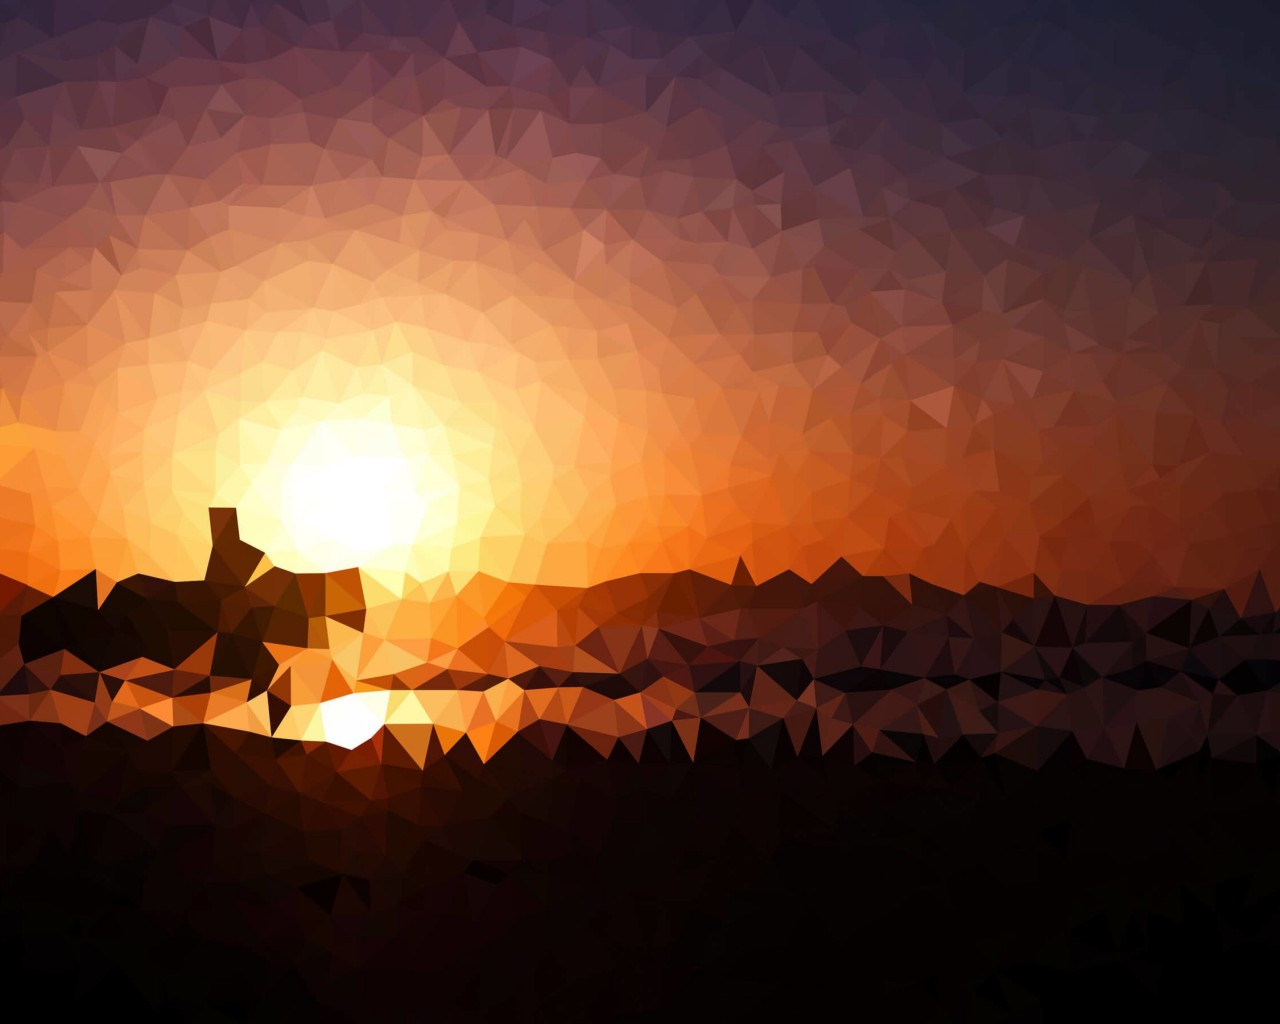 Low Poly Sunset Wallpaper for Desktop 1280x1024